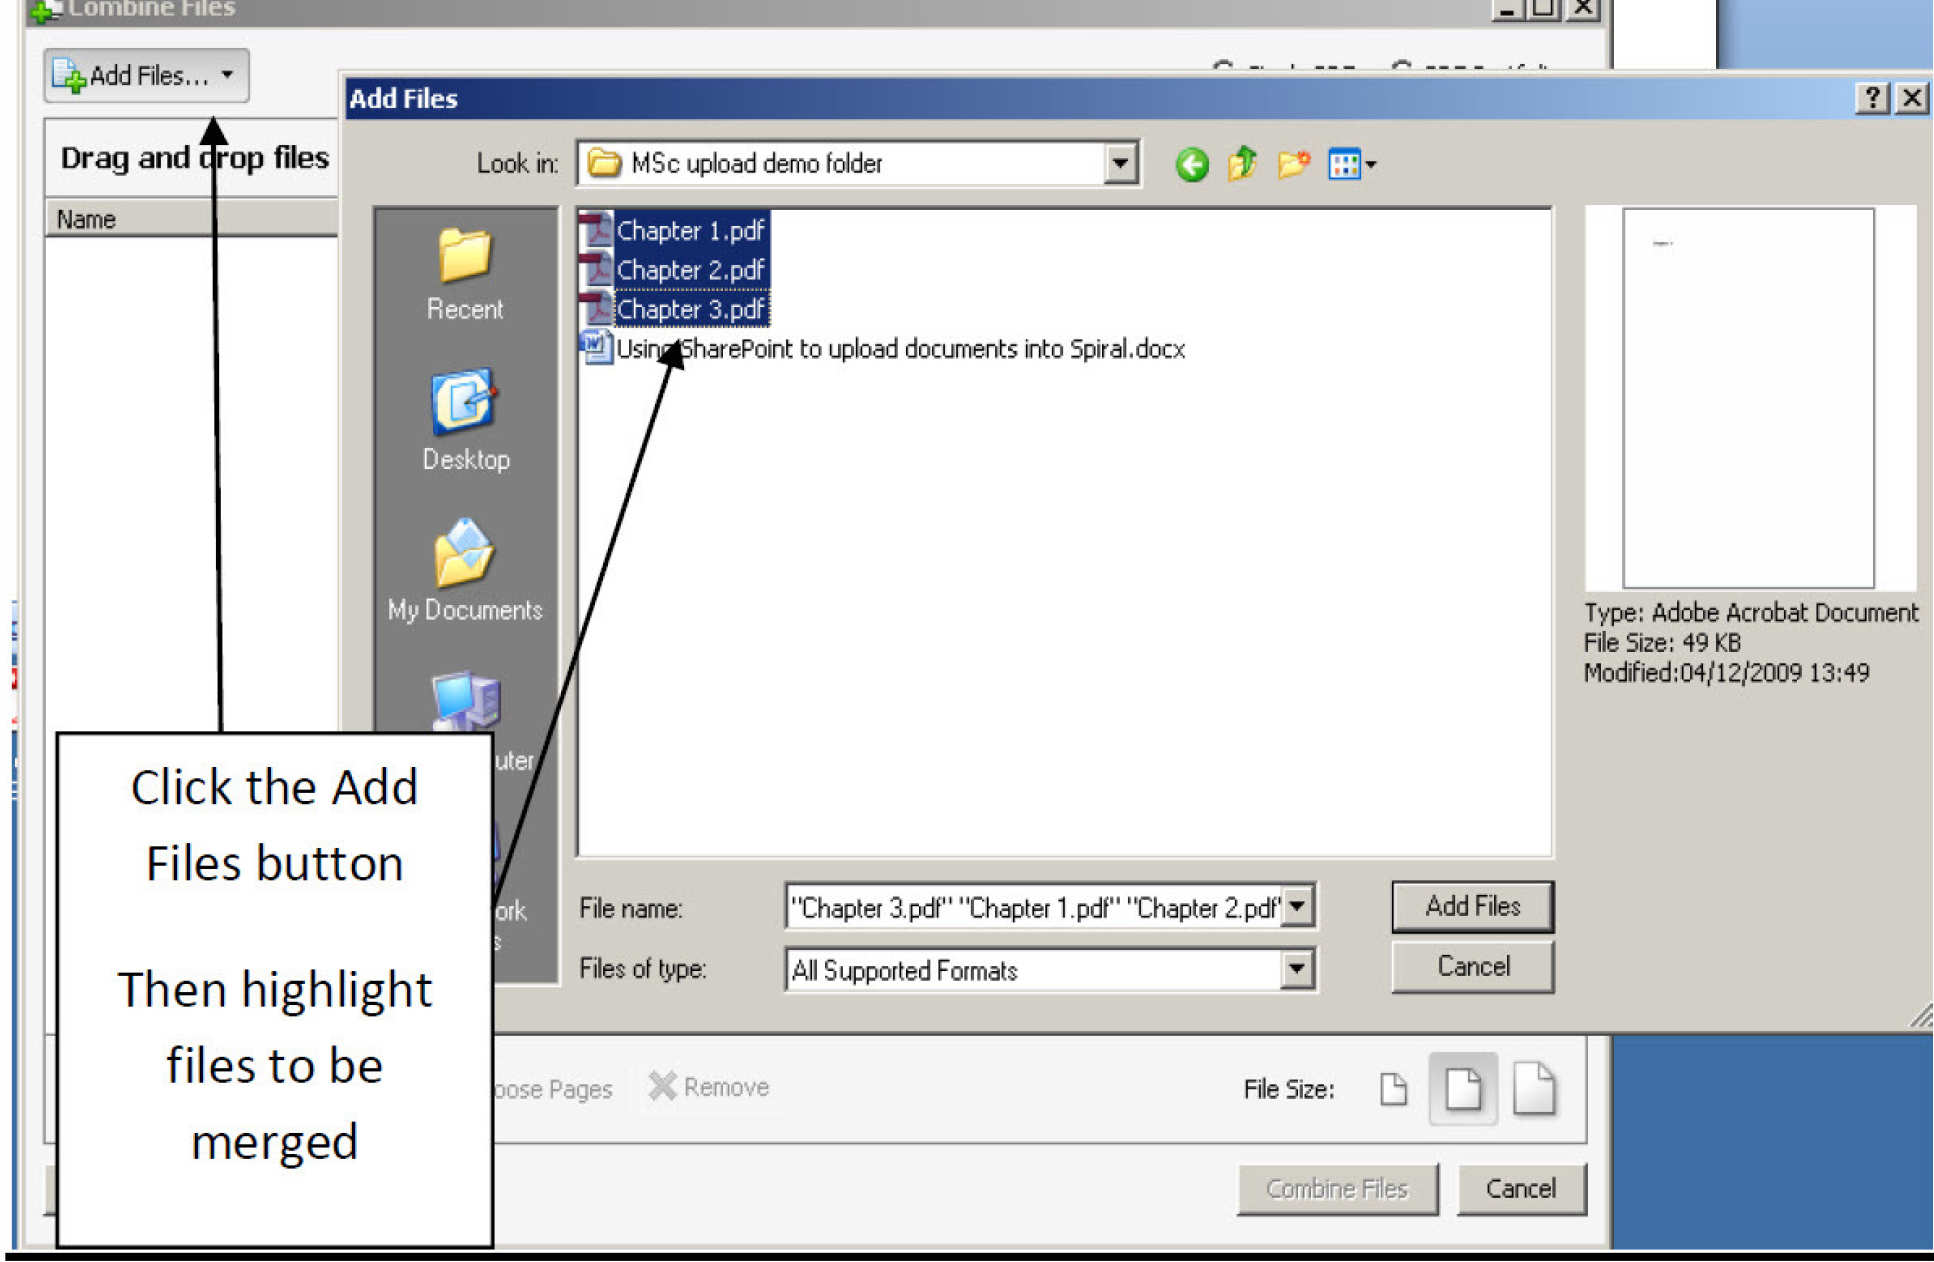 Screen image showing Add files button